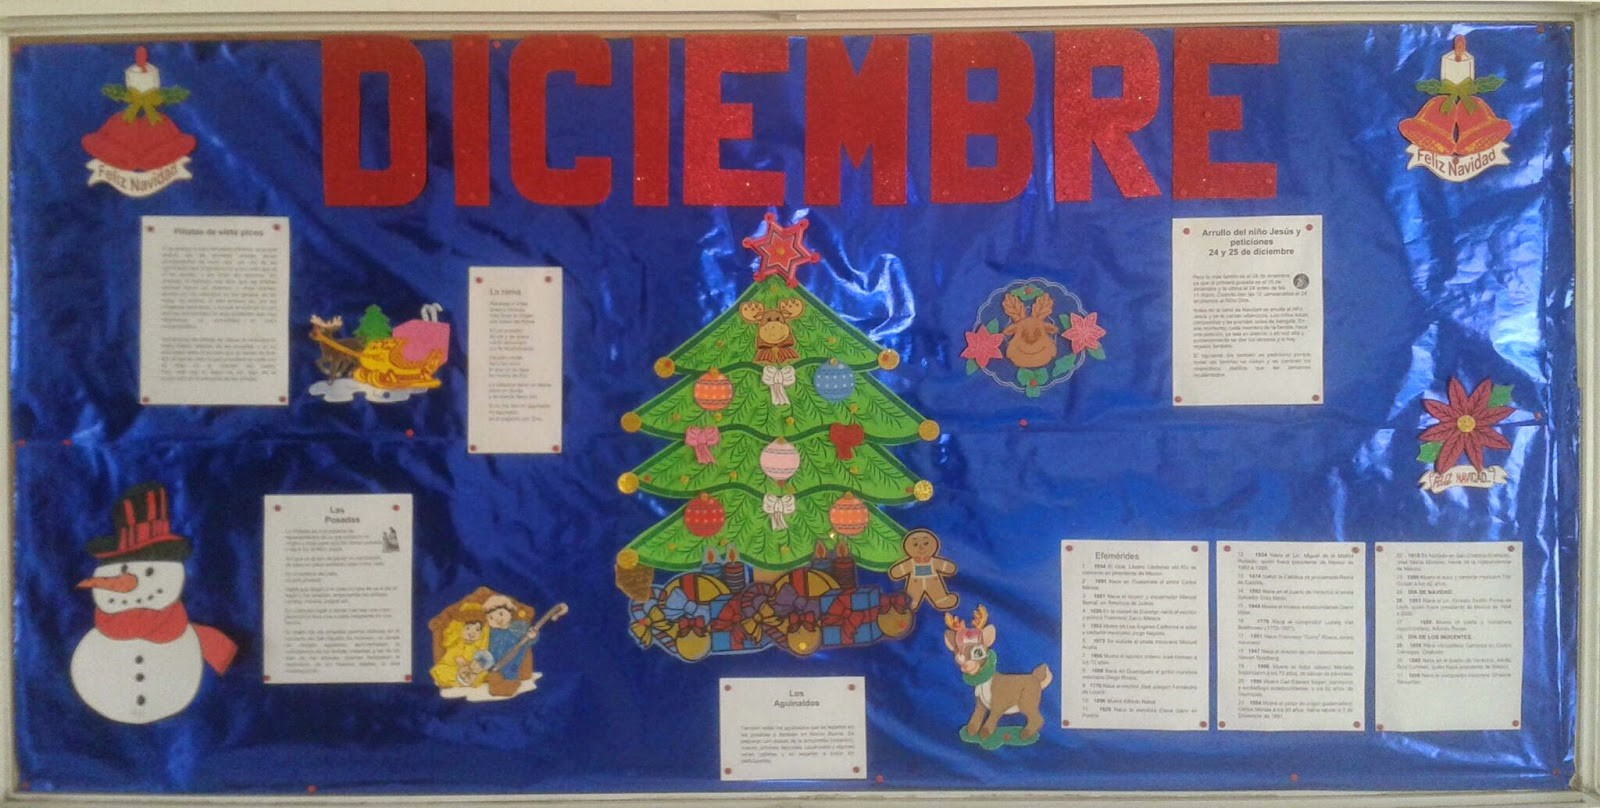 Periodico mural diciembre 2 imagenes educativas for Como decorar un mural